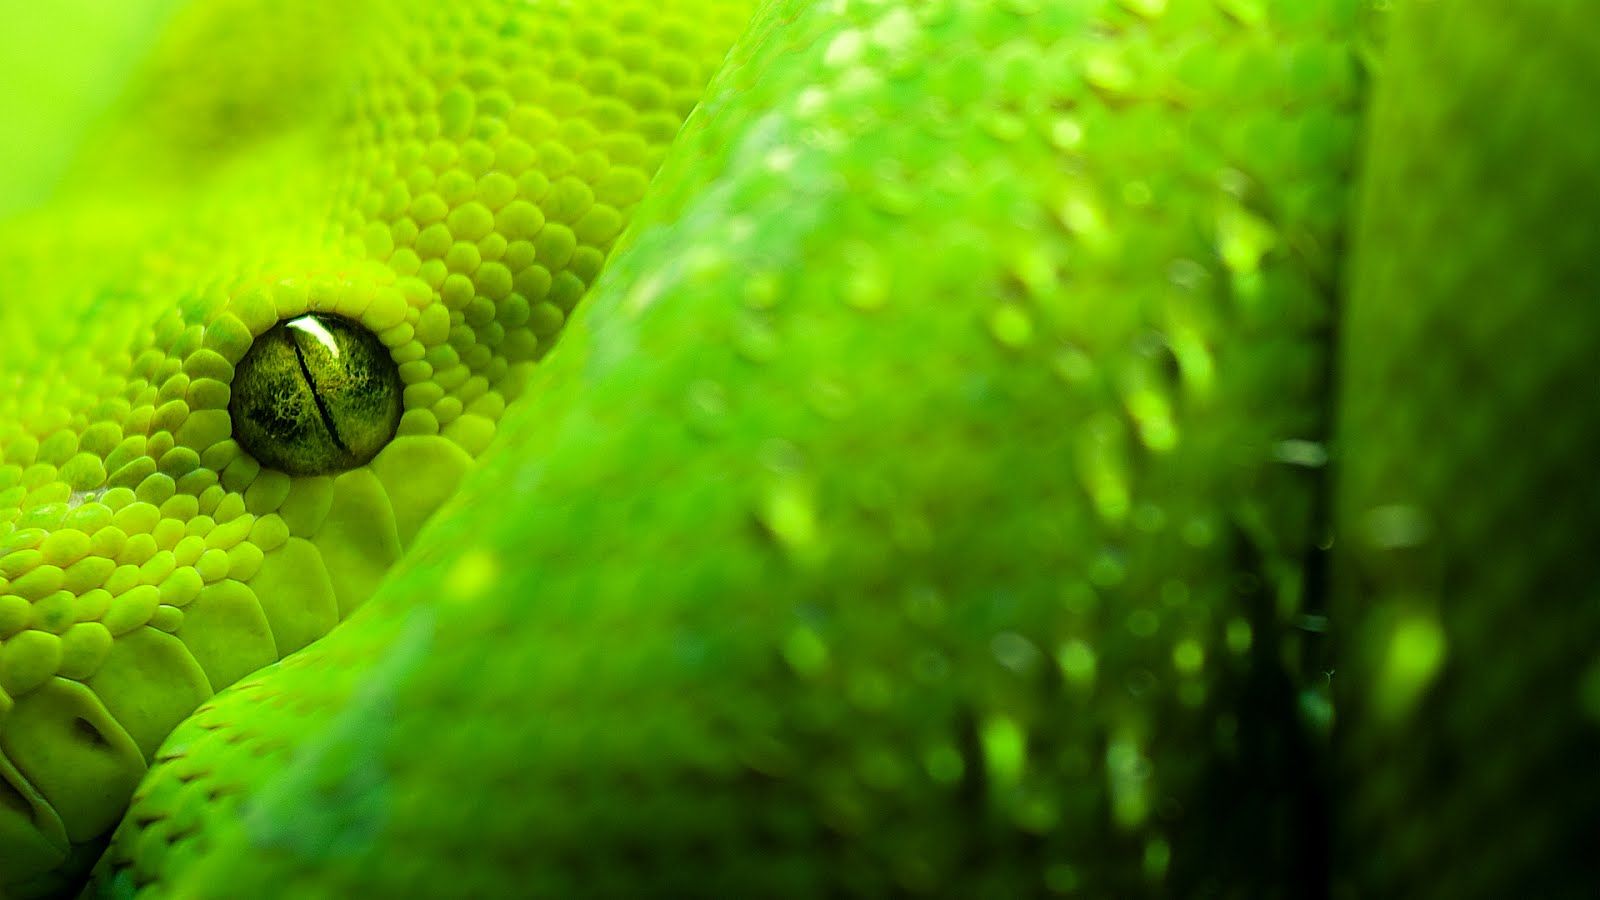 http://1.bp.blogspot.com/-m1fX3q6b6dQ/T7PT5GB_8mI/AAAAAAAAAh0/LlI_9K9KuLw/s1600/HD-Wallpapers_Free_Mobile_Animals_Killer+Green+Poisonous+snake_-751884.jpg